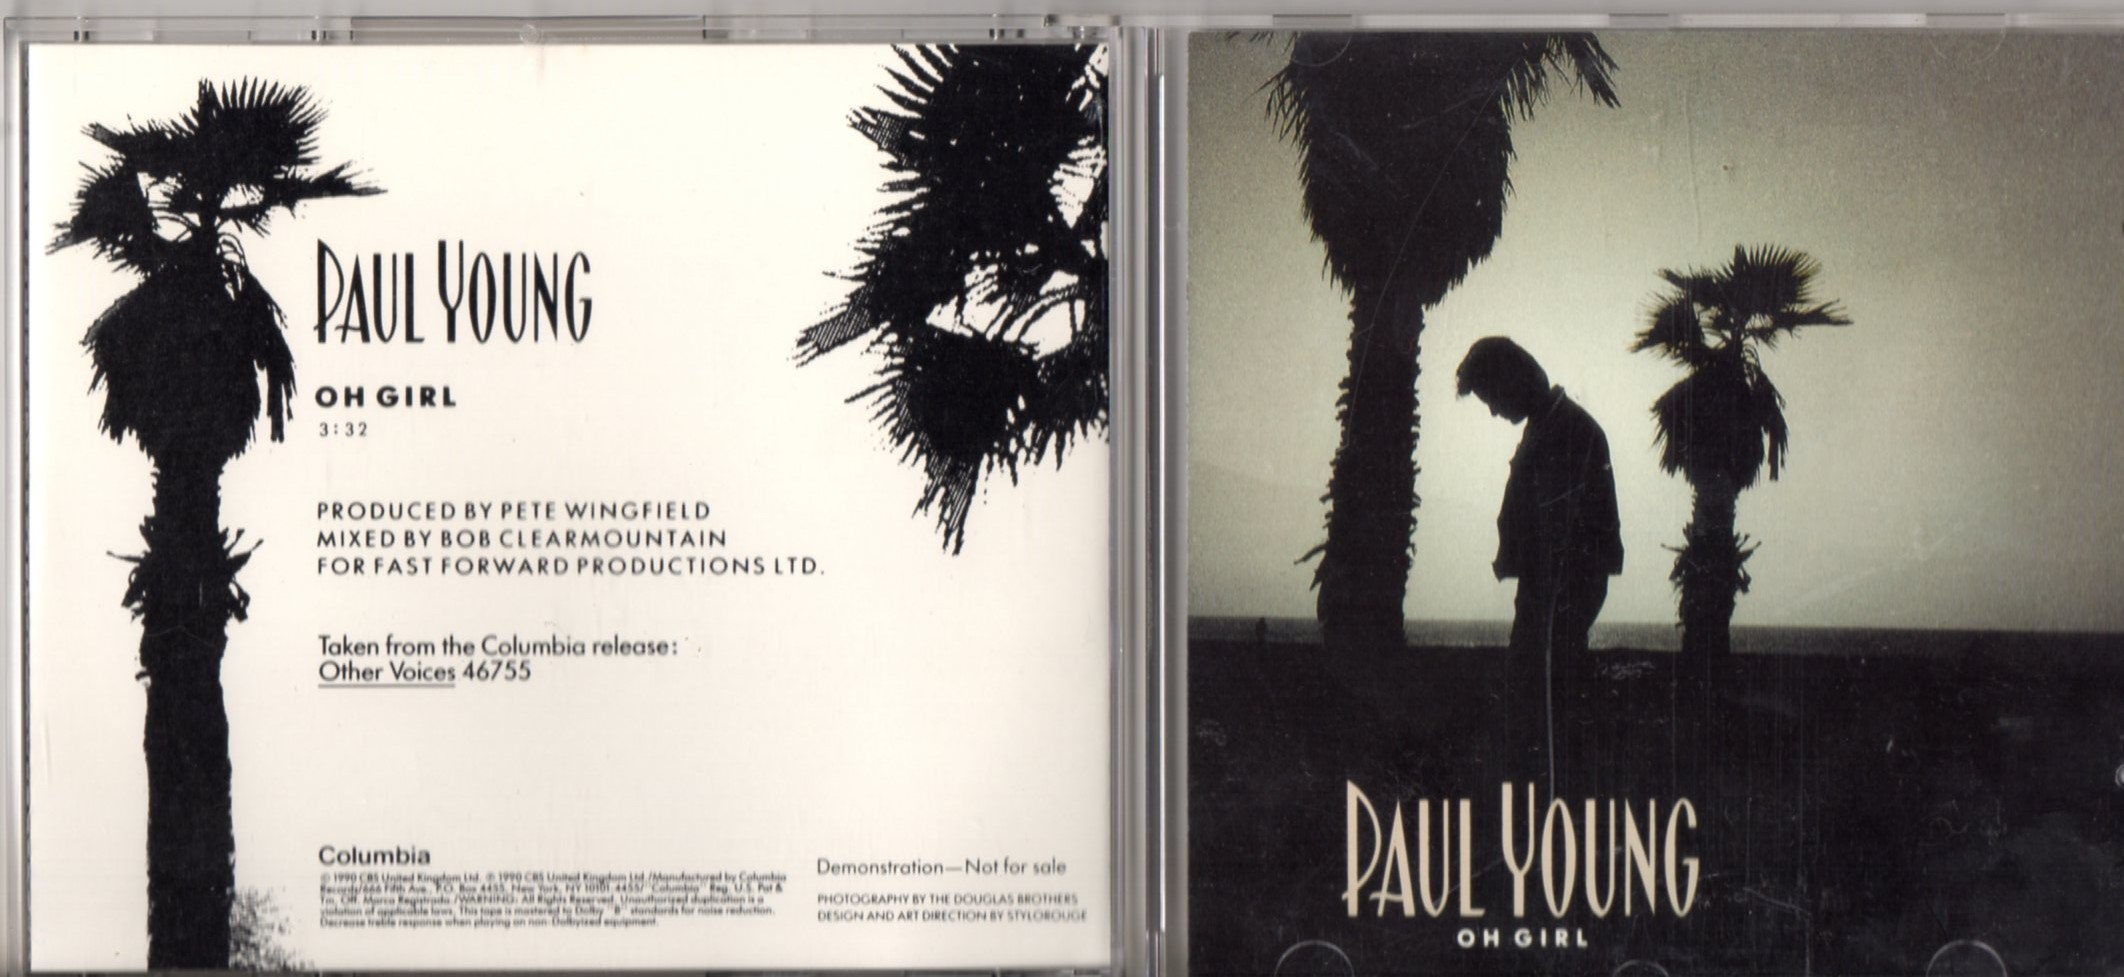 PAUL YOUNG - Grazing in the grass - Promo 1-track jewel case - CD Maxi